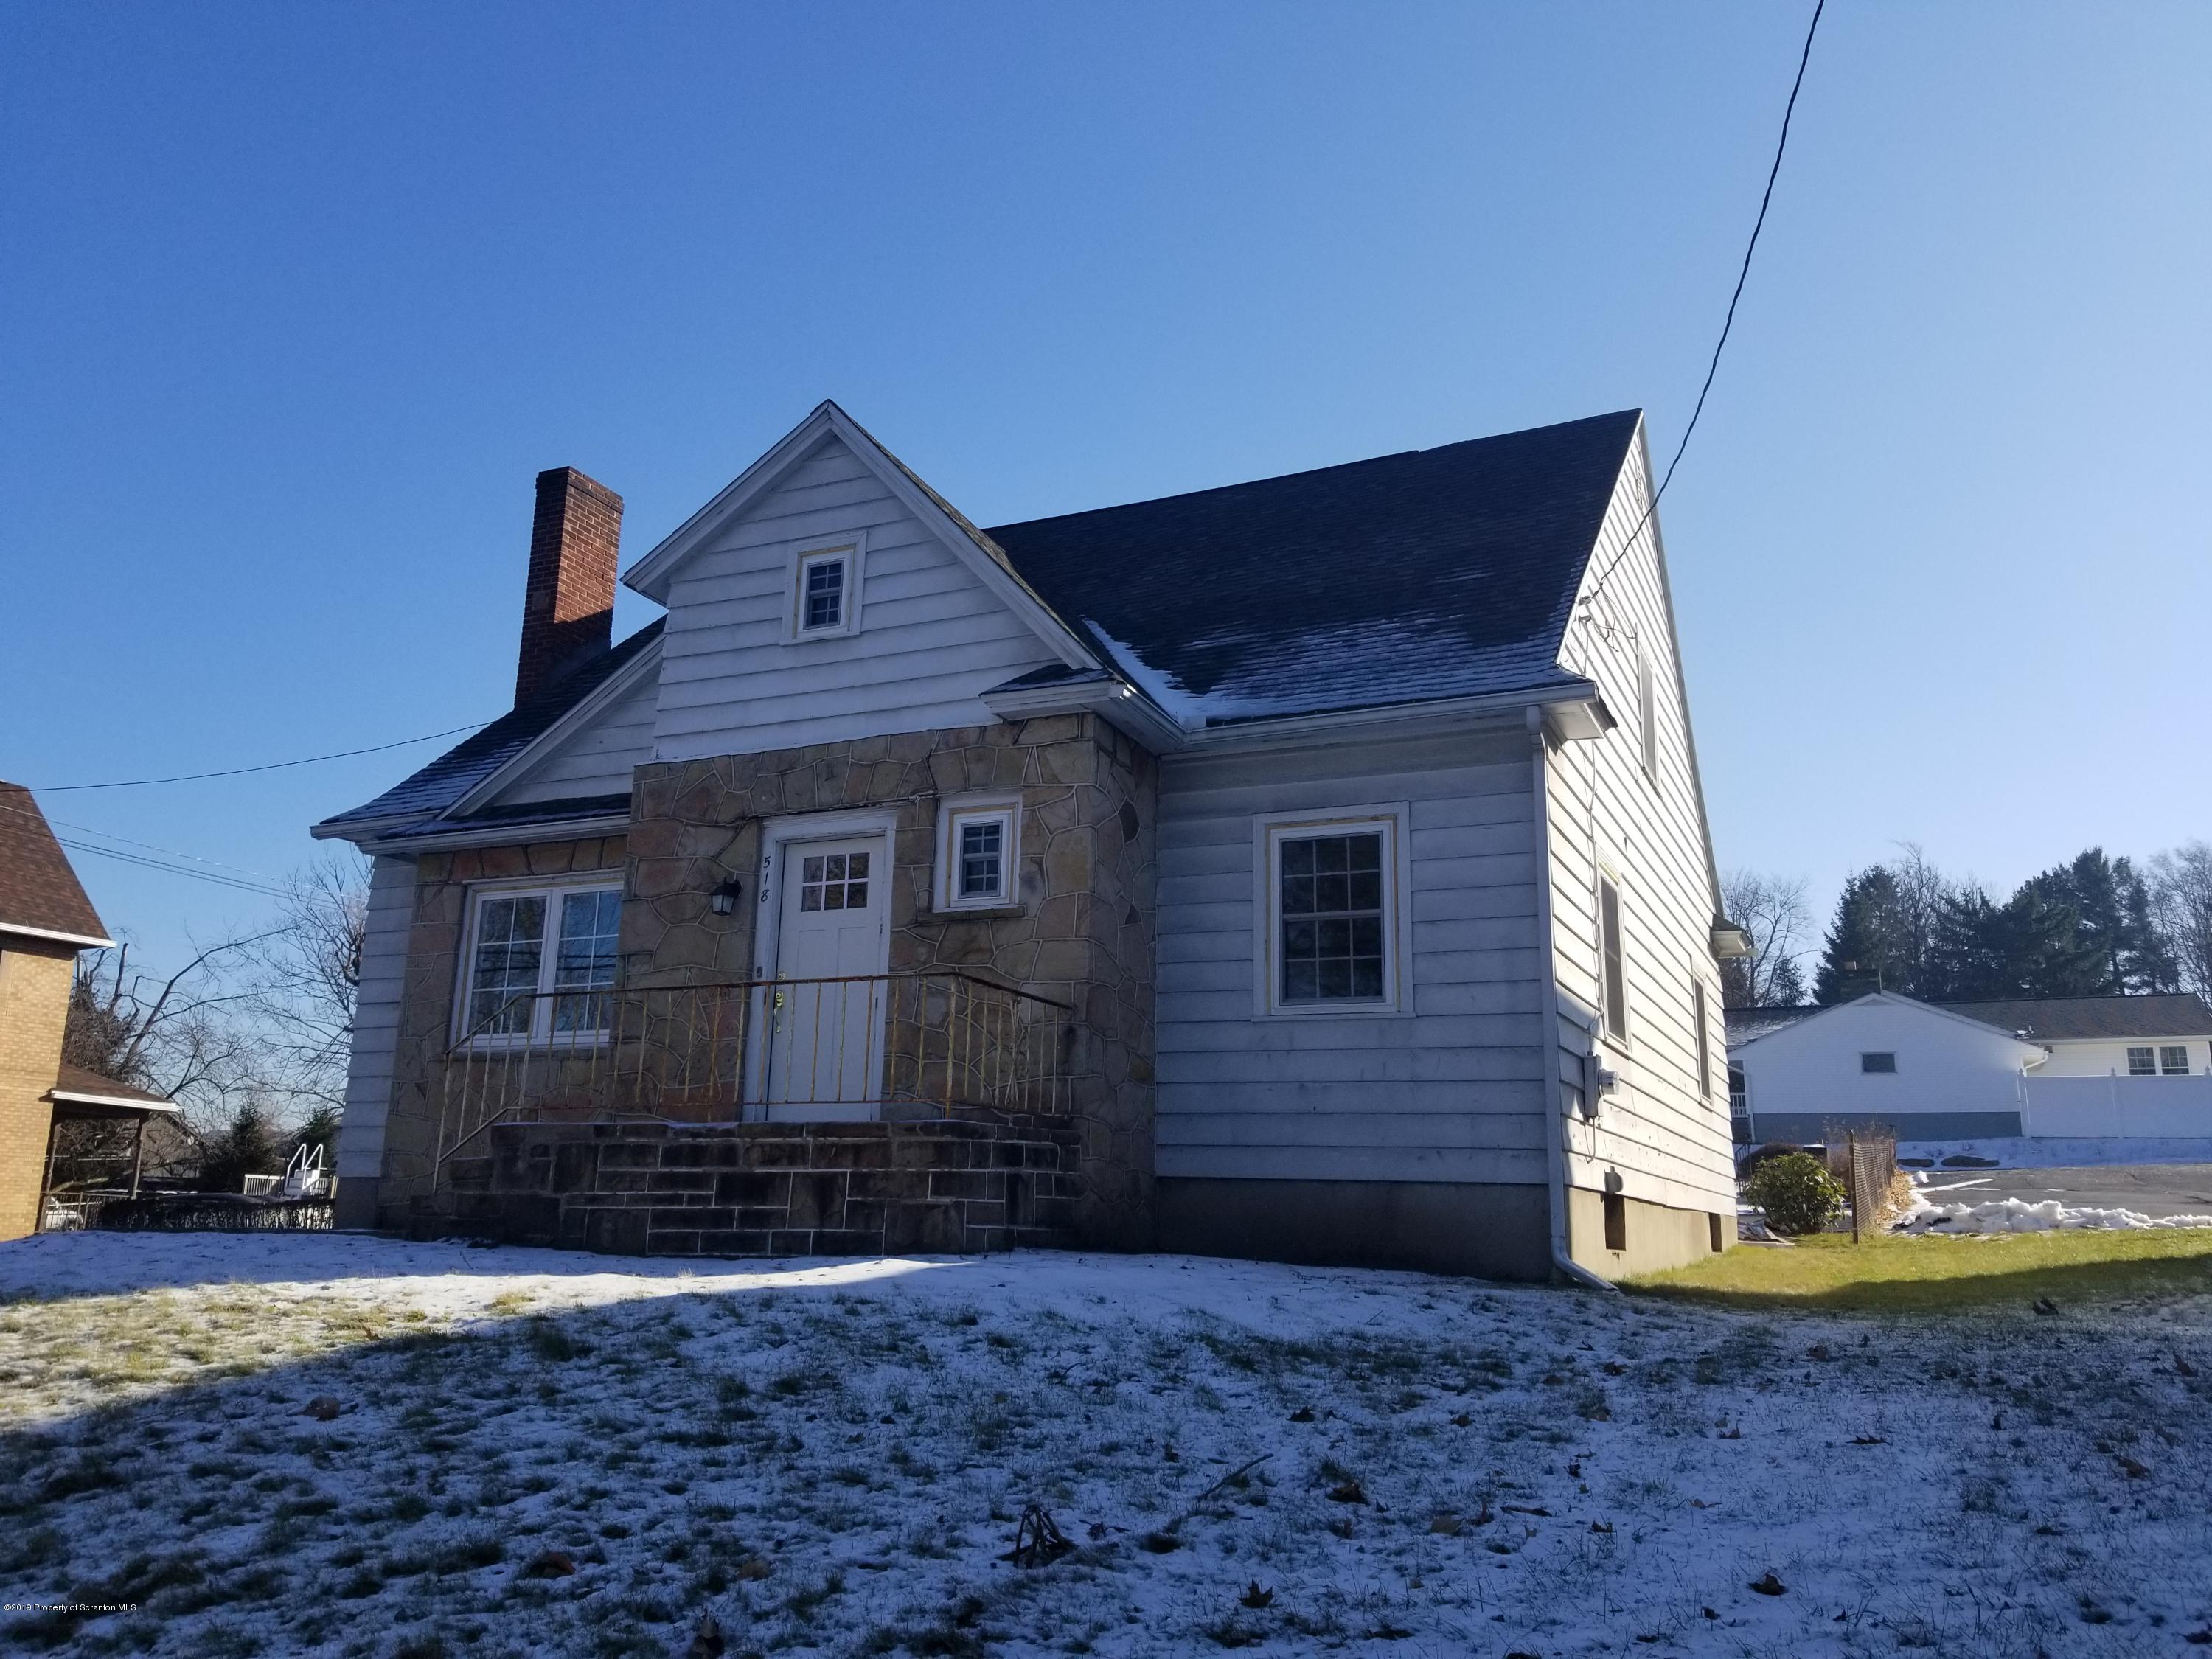 518 Blakely St, Dunmore, Pennsylvania 18512, ,1 BathroomBathrooms,Commercial,For Lease,Blakely,19-5764